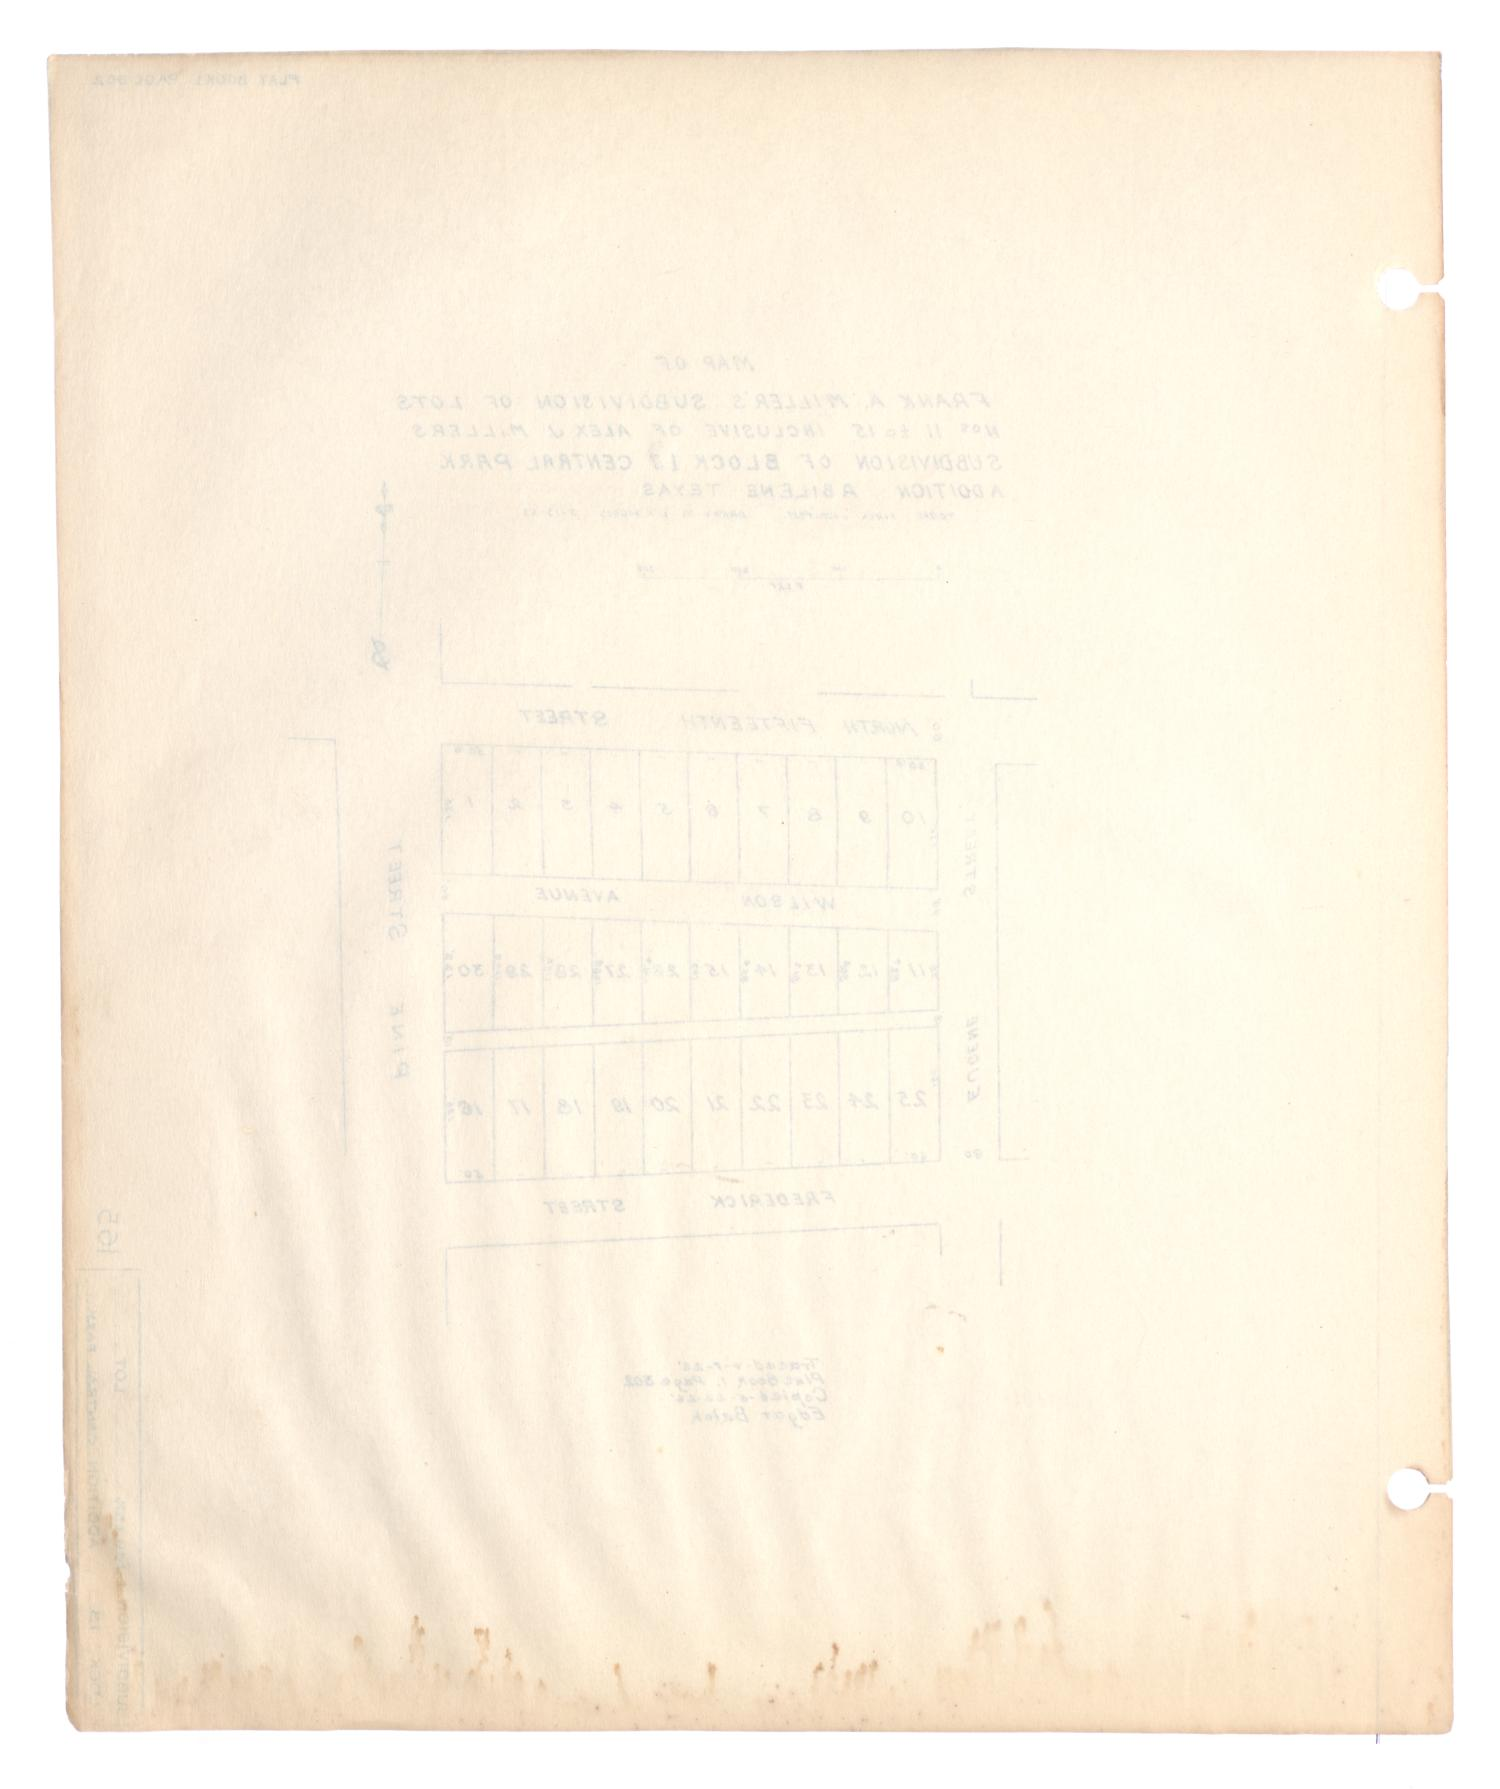 Map of Frank A. Miller's Subdivision of Lots Numbers 11 to 15 inclusive of Alex J. Millers Subdivision of Block 13, Central Park Addition, Abilene, Texas                                                                                                      [Sequence #]: 2 of 2